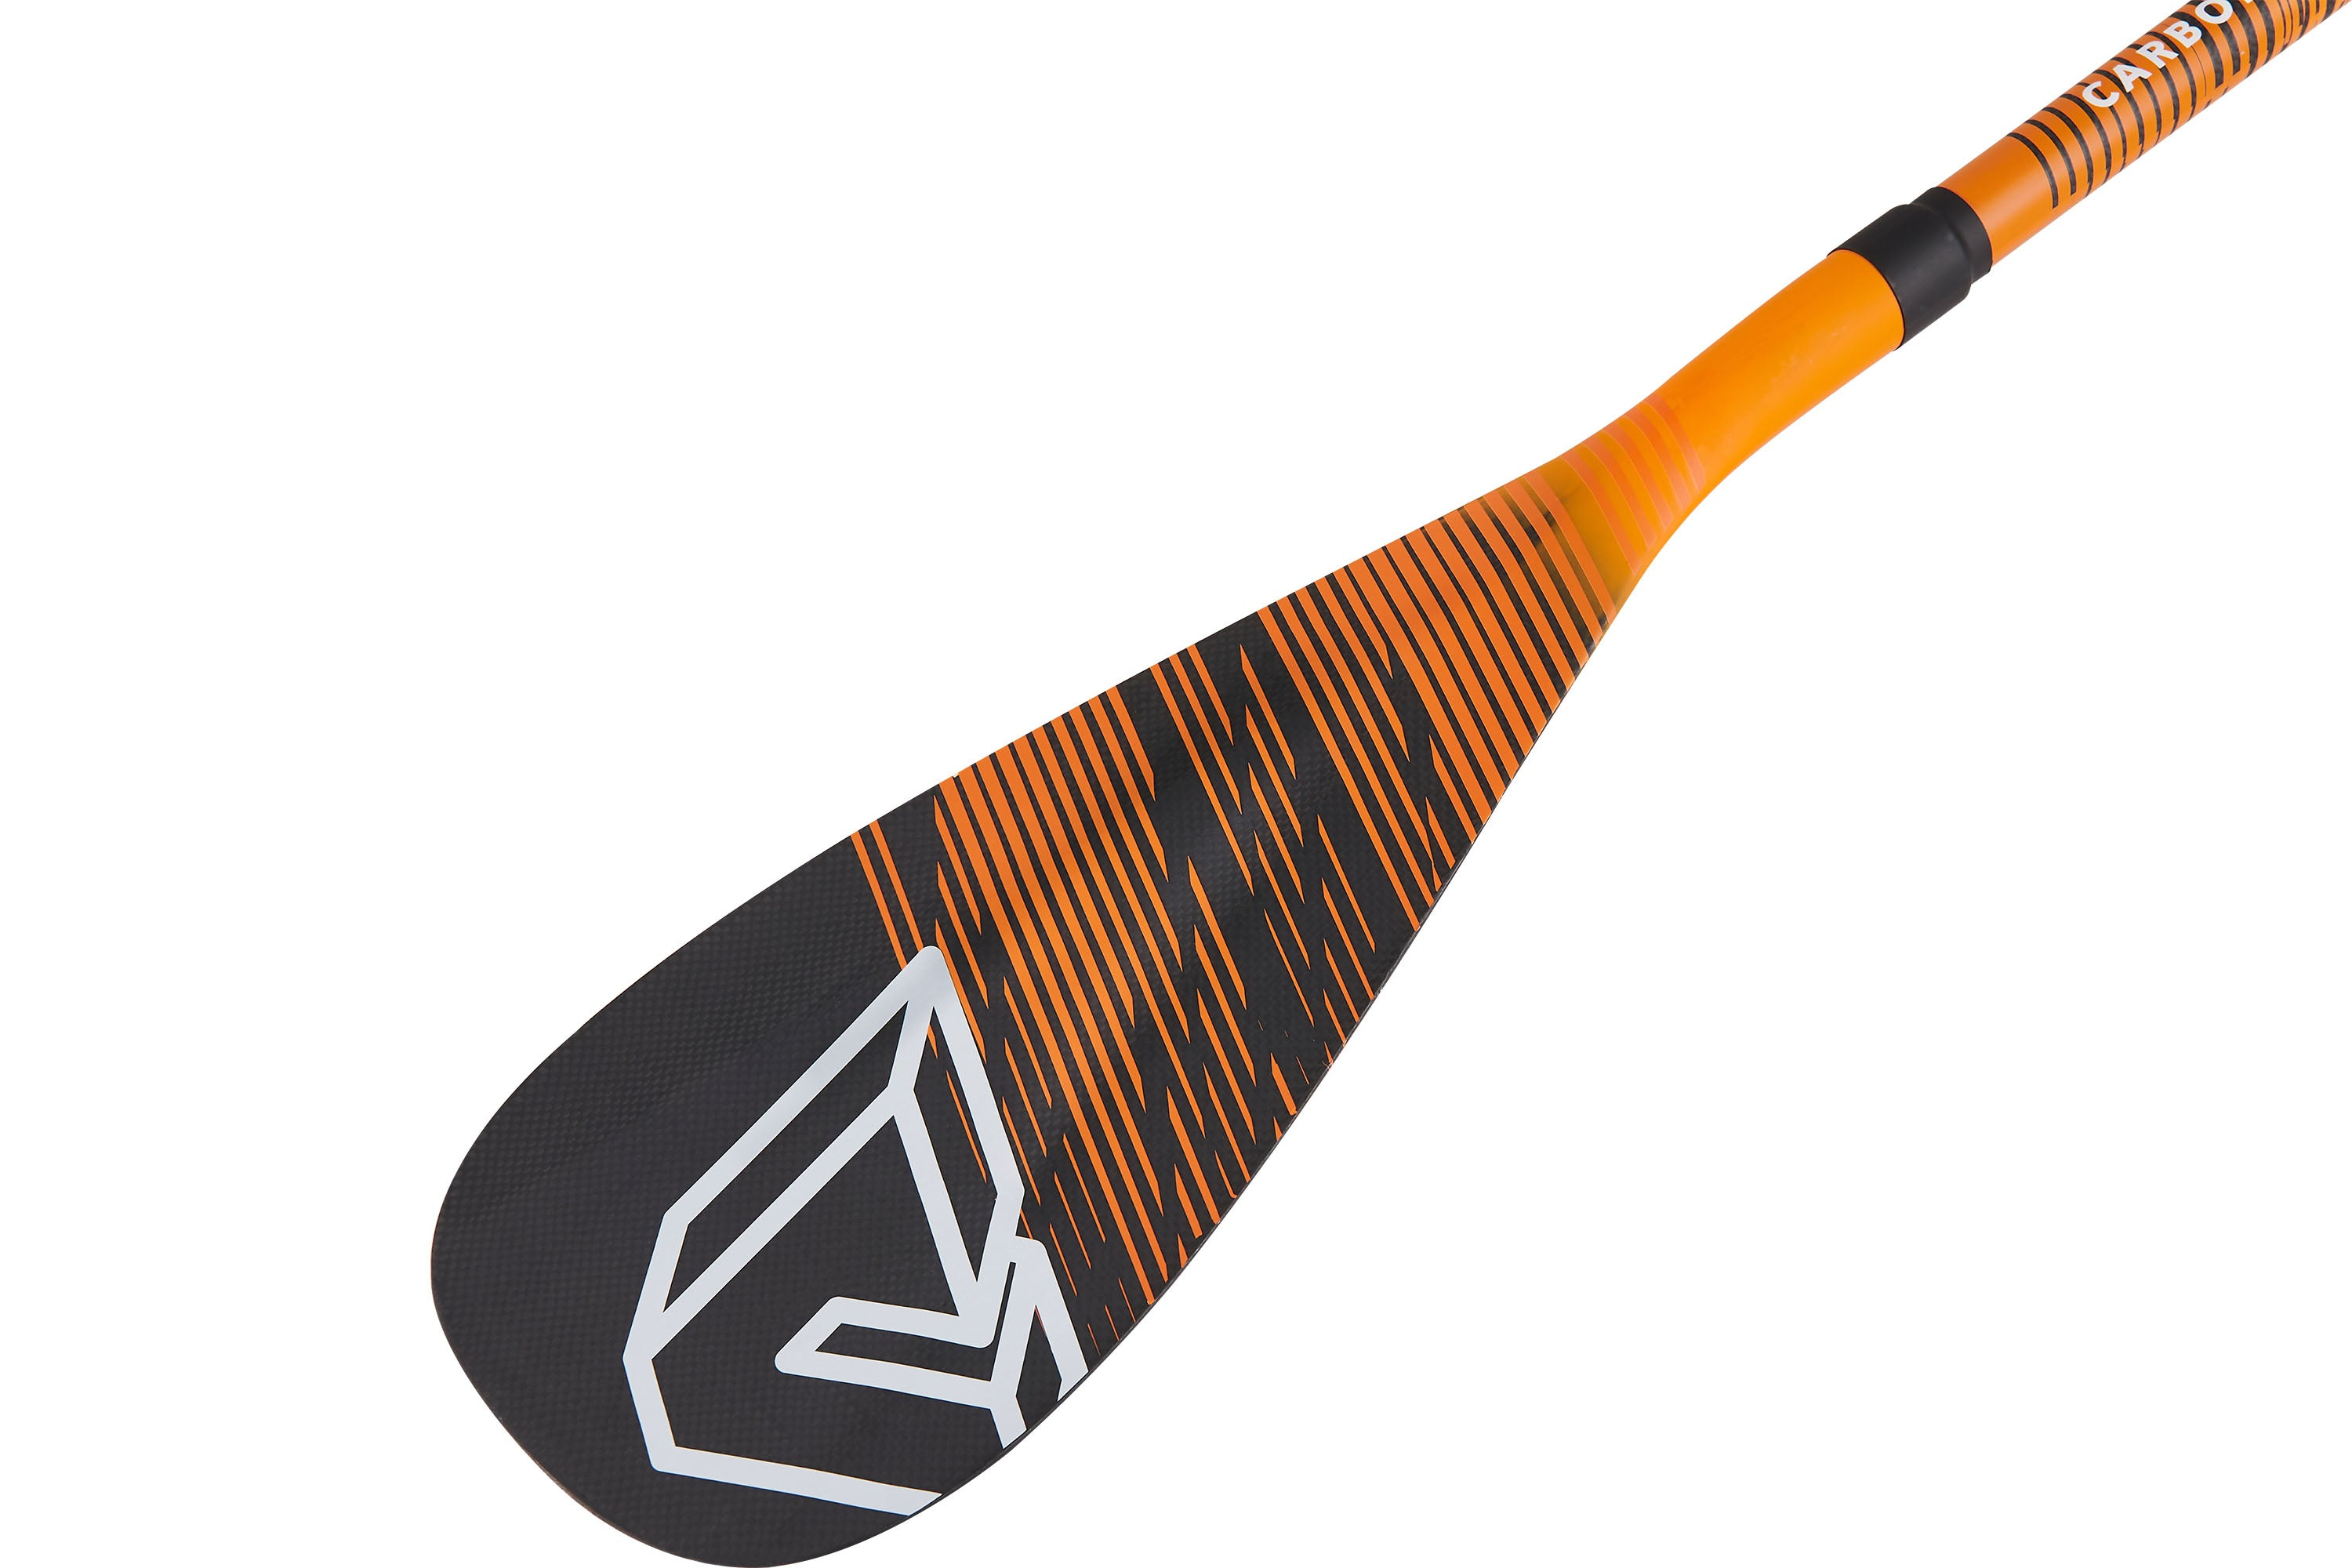 CARBON X Adjustable Carbon Paddle (2 sections)